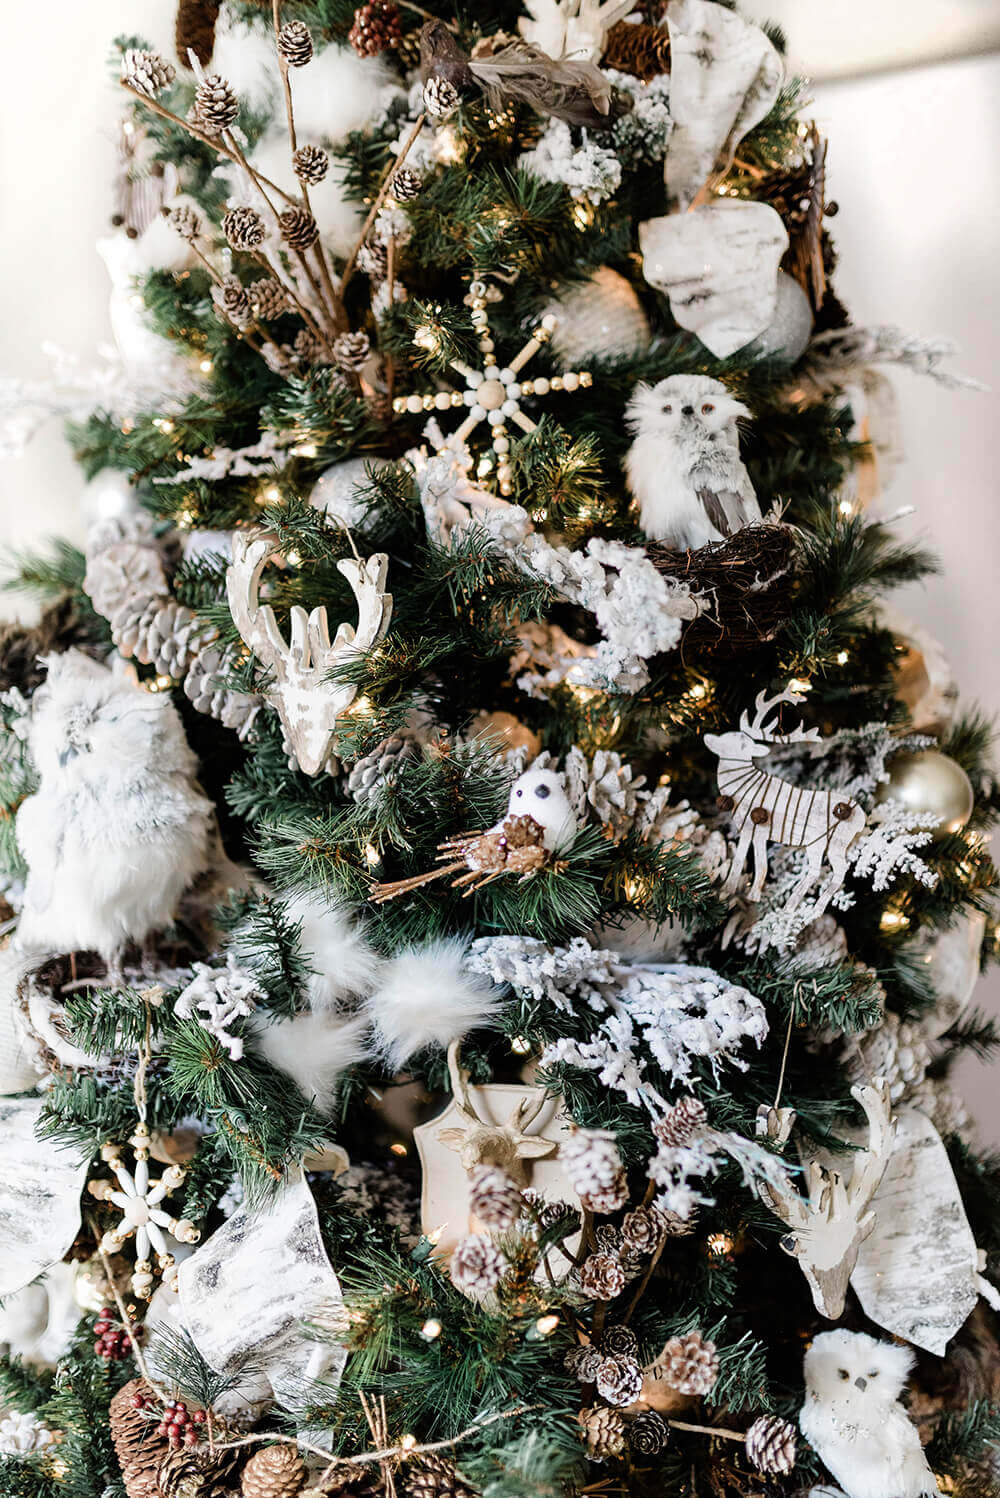 Winter Woodland Christmas Tree Decorating Ideas - Parties ...